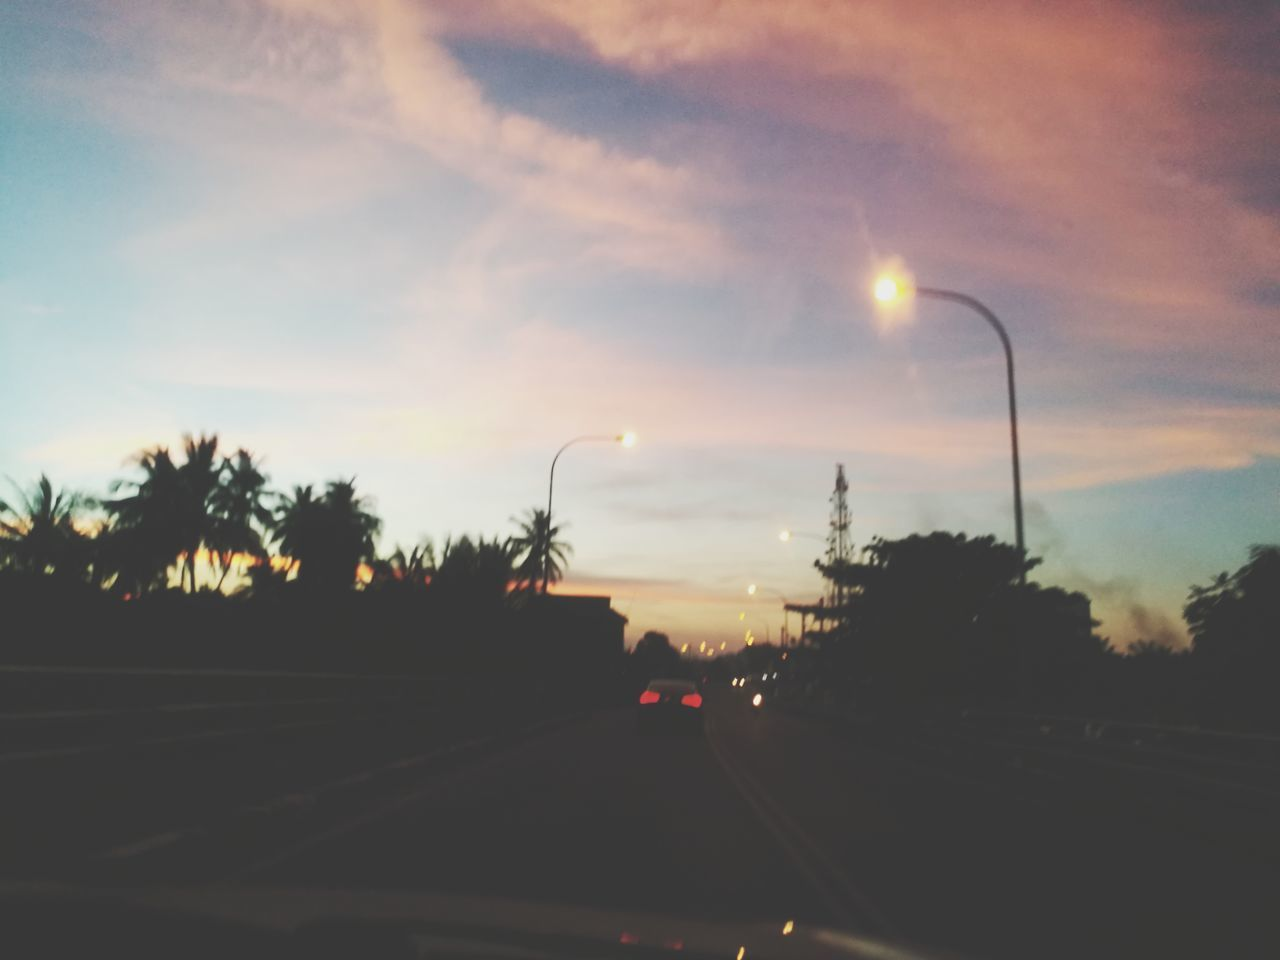 Car Transportation Road Tree Travel Highway Driving Sunset Traffic Mode Of Transport Maghrib Time Kelantan Malaysia The Way Forward Outdoors Land Vehicle Sunset_collection No People Cloud - Sky Sky Illuminated Night